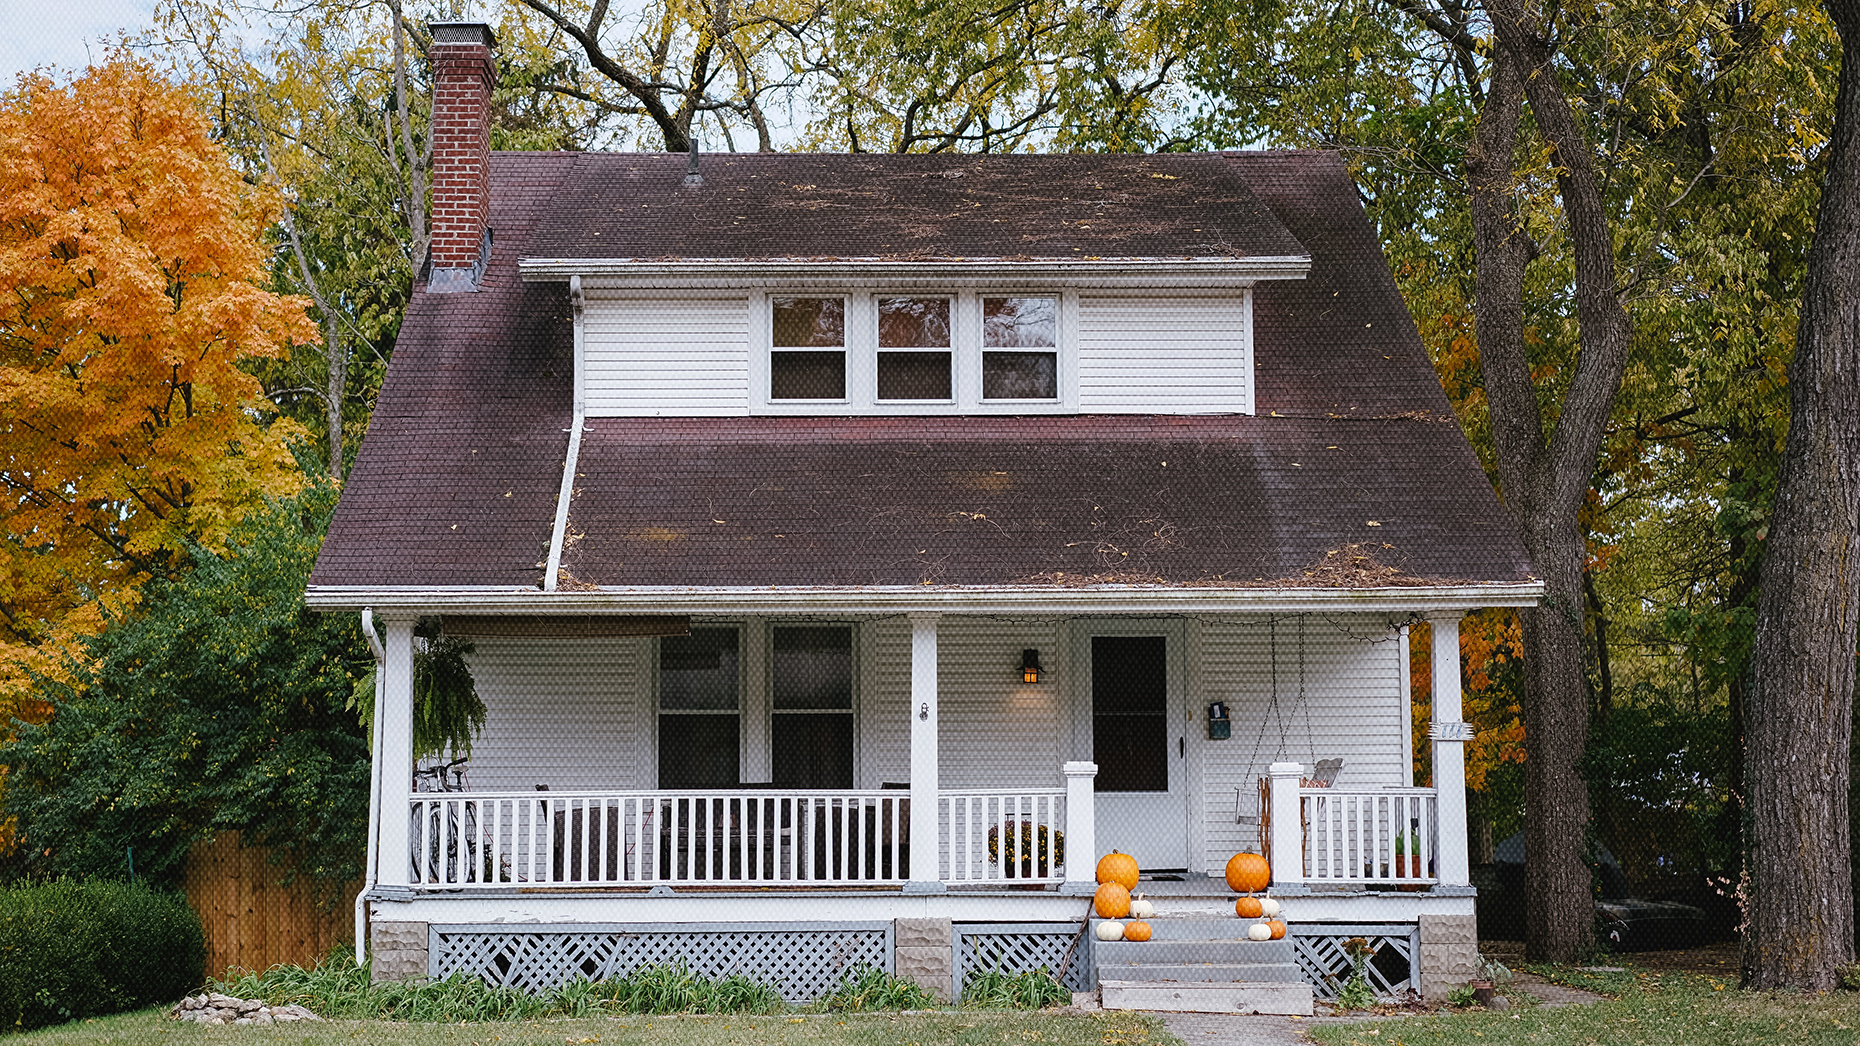 Inman Review: Plotify helps people invest in single-family rentals